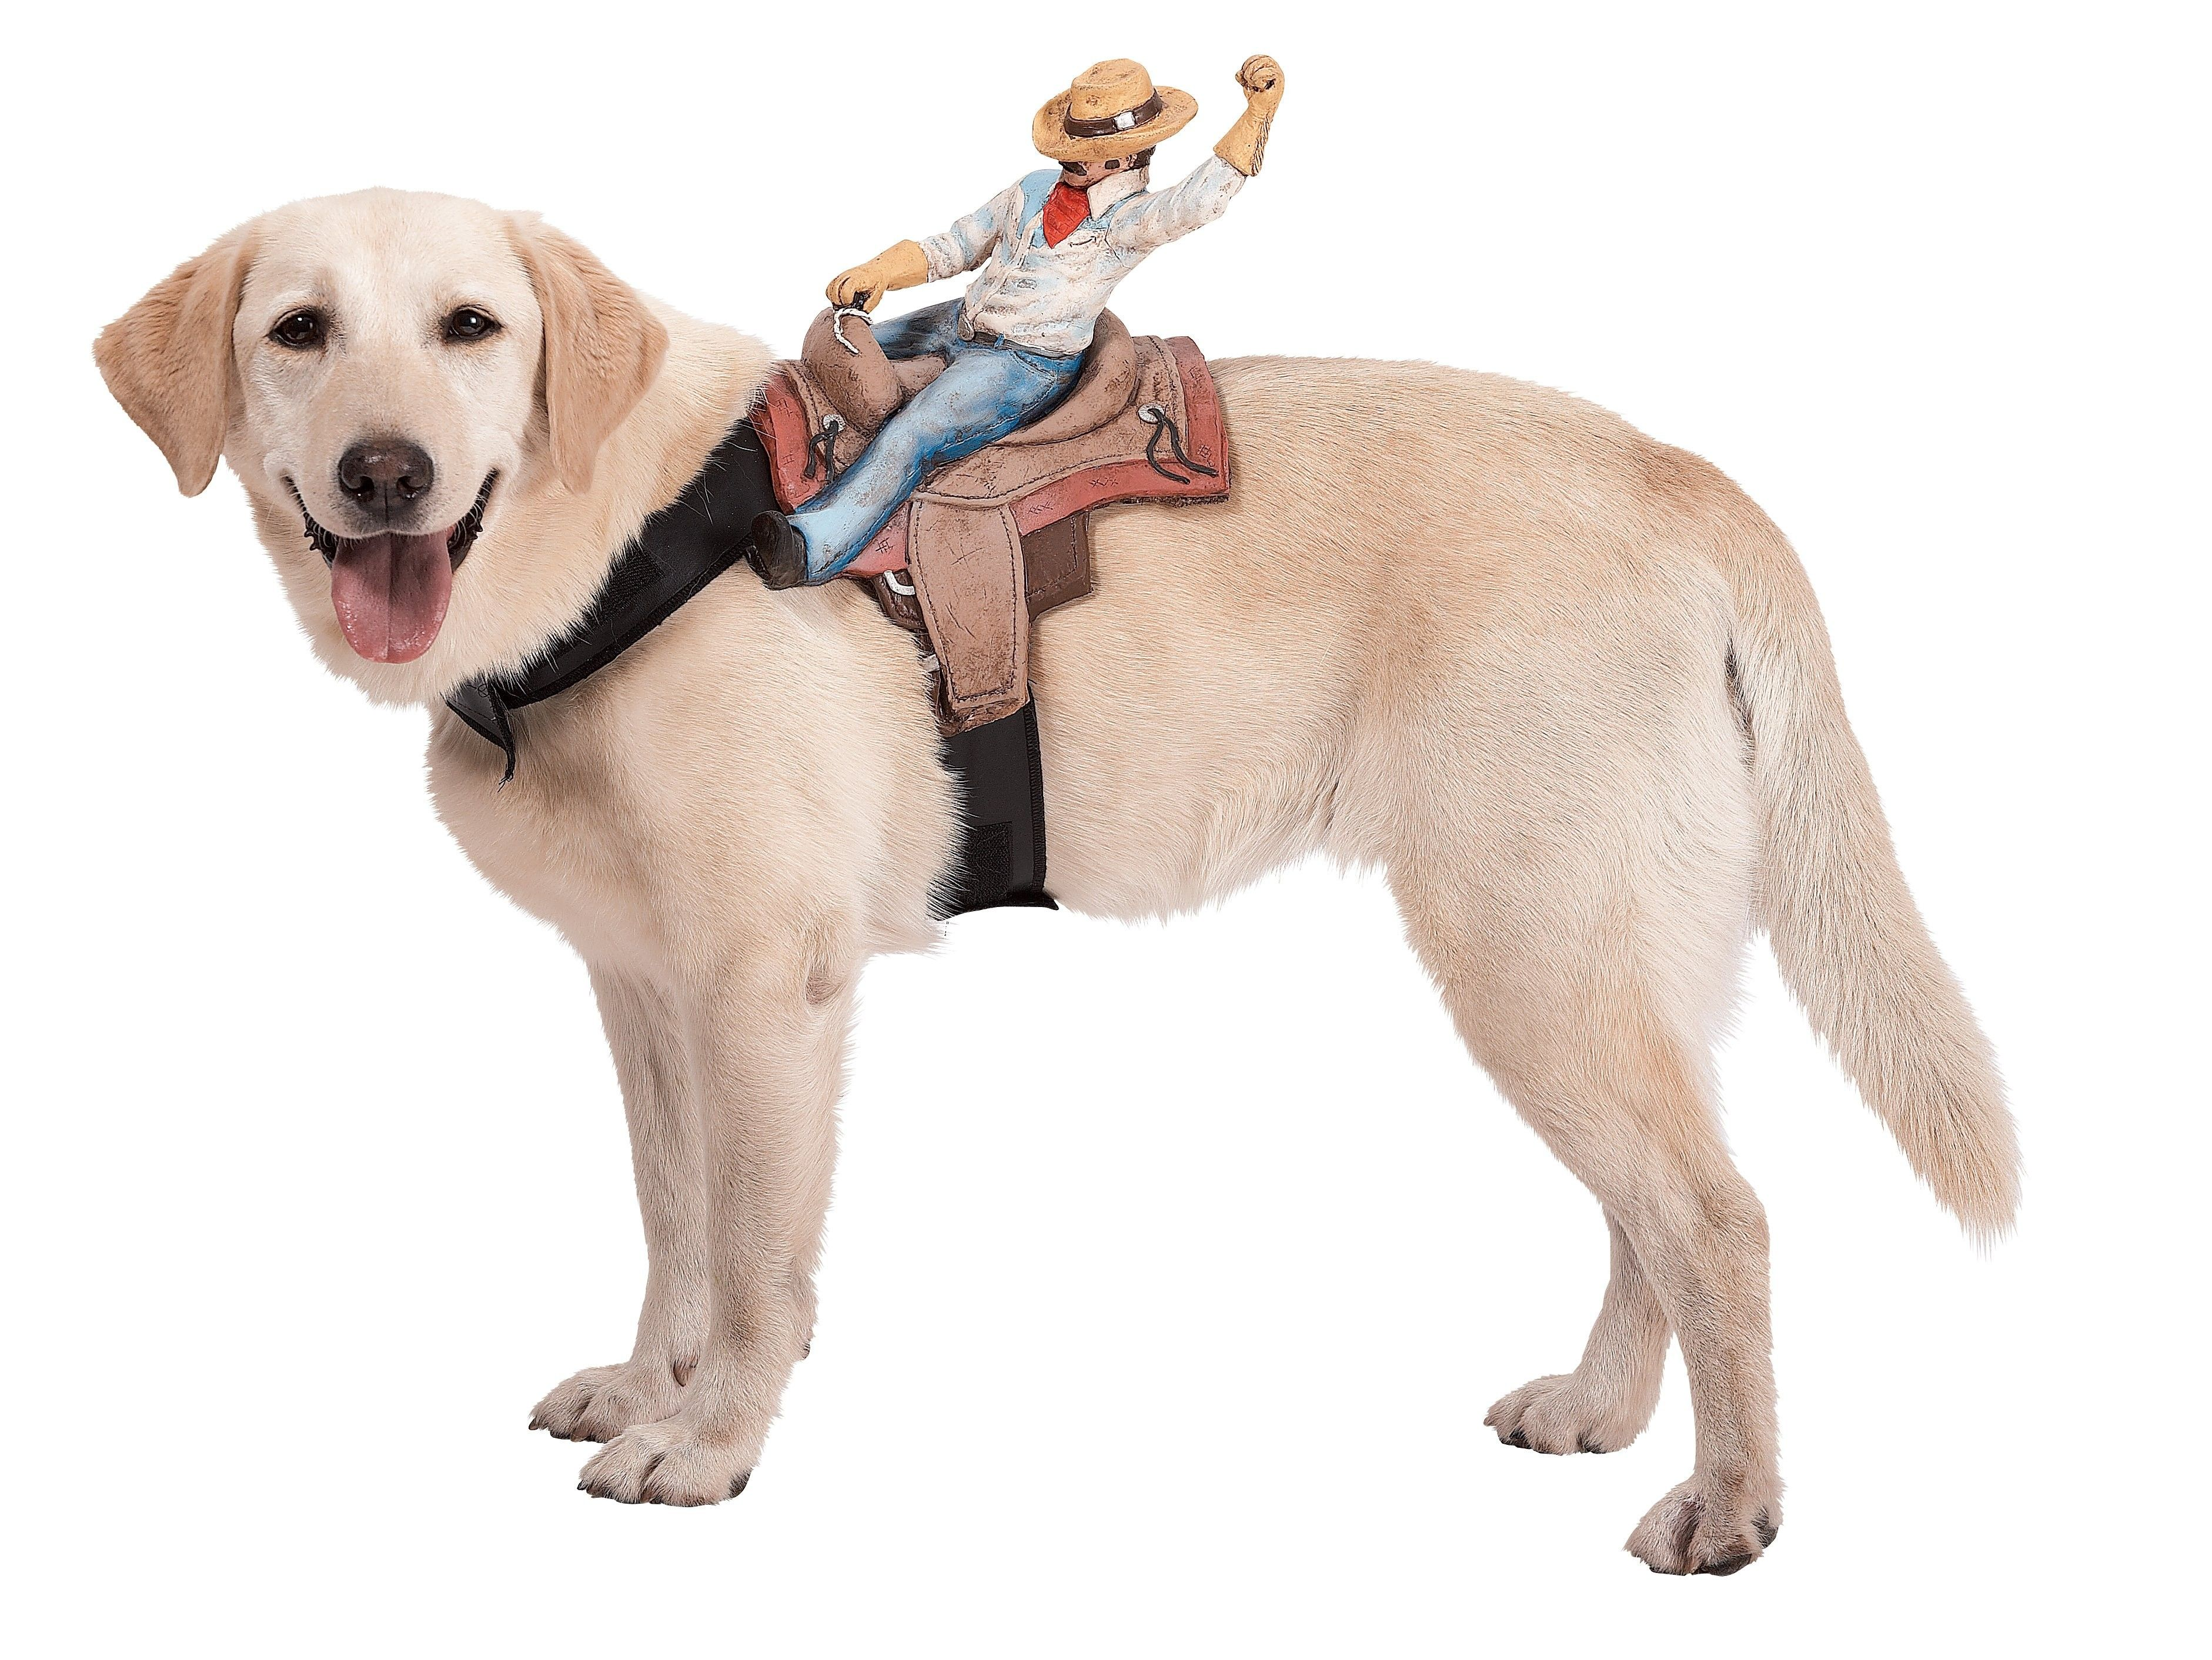 Dog Riders Cowboy Costume Includes one dog harness with